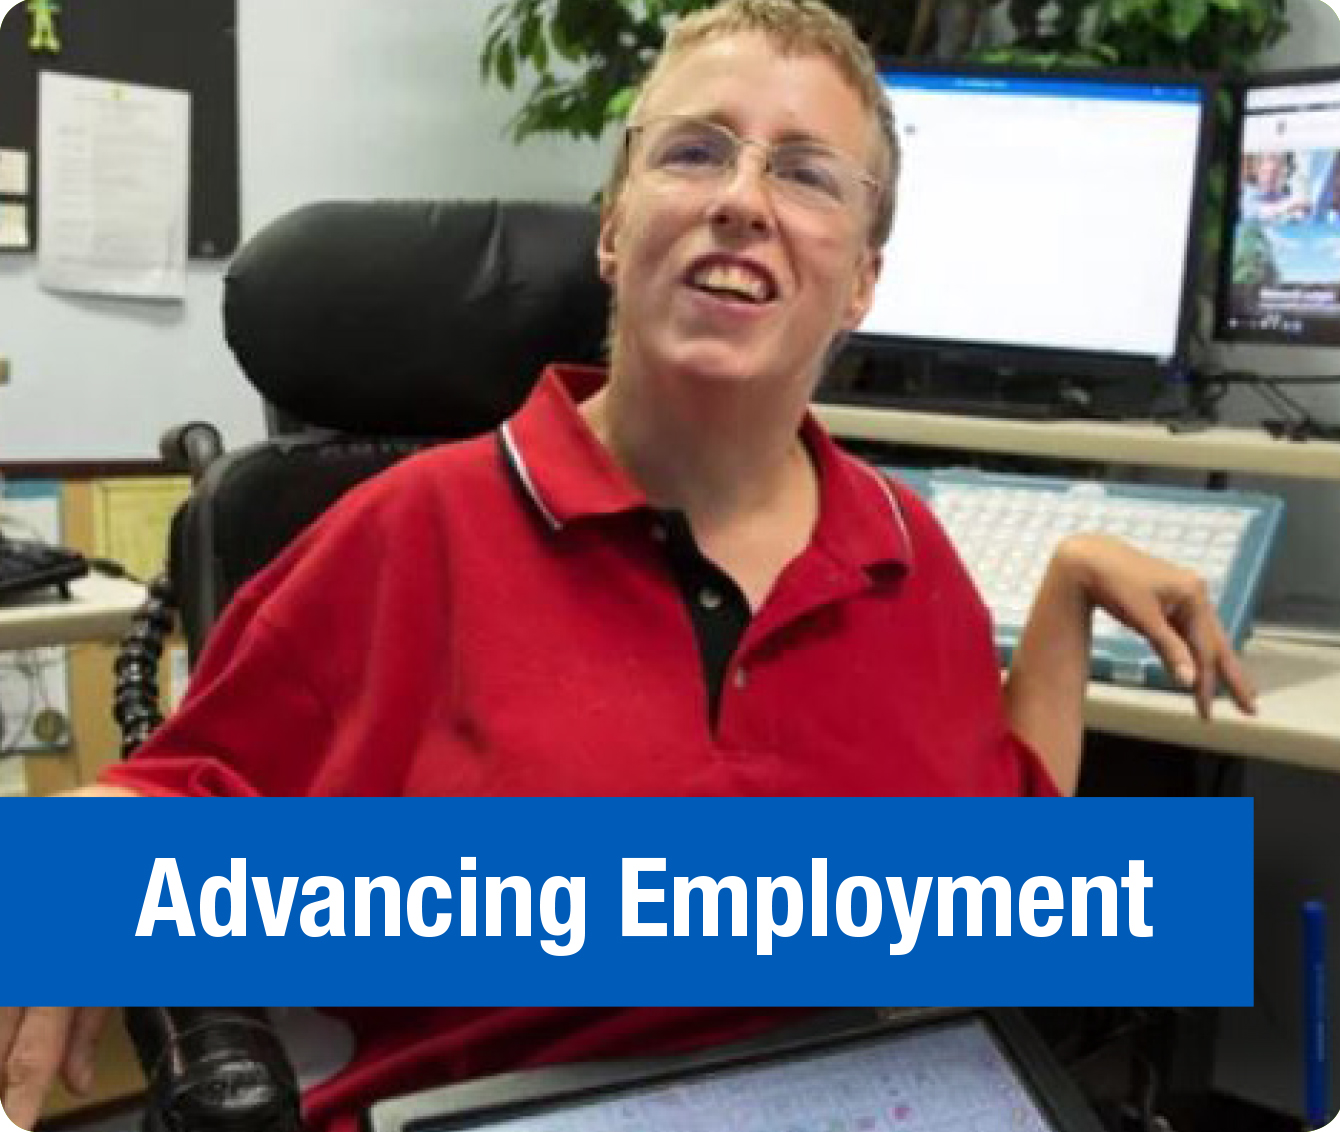 Advancing Employment